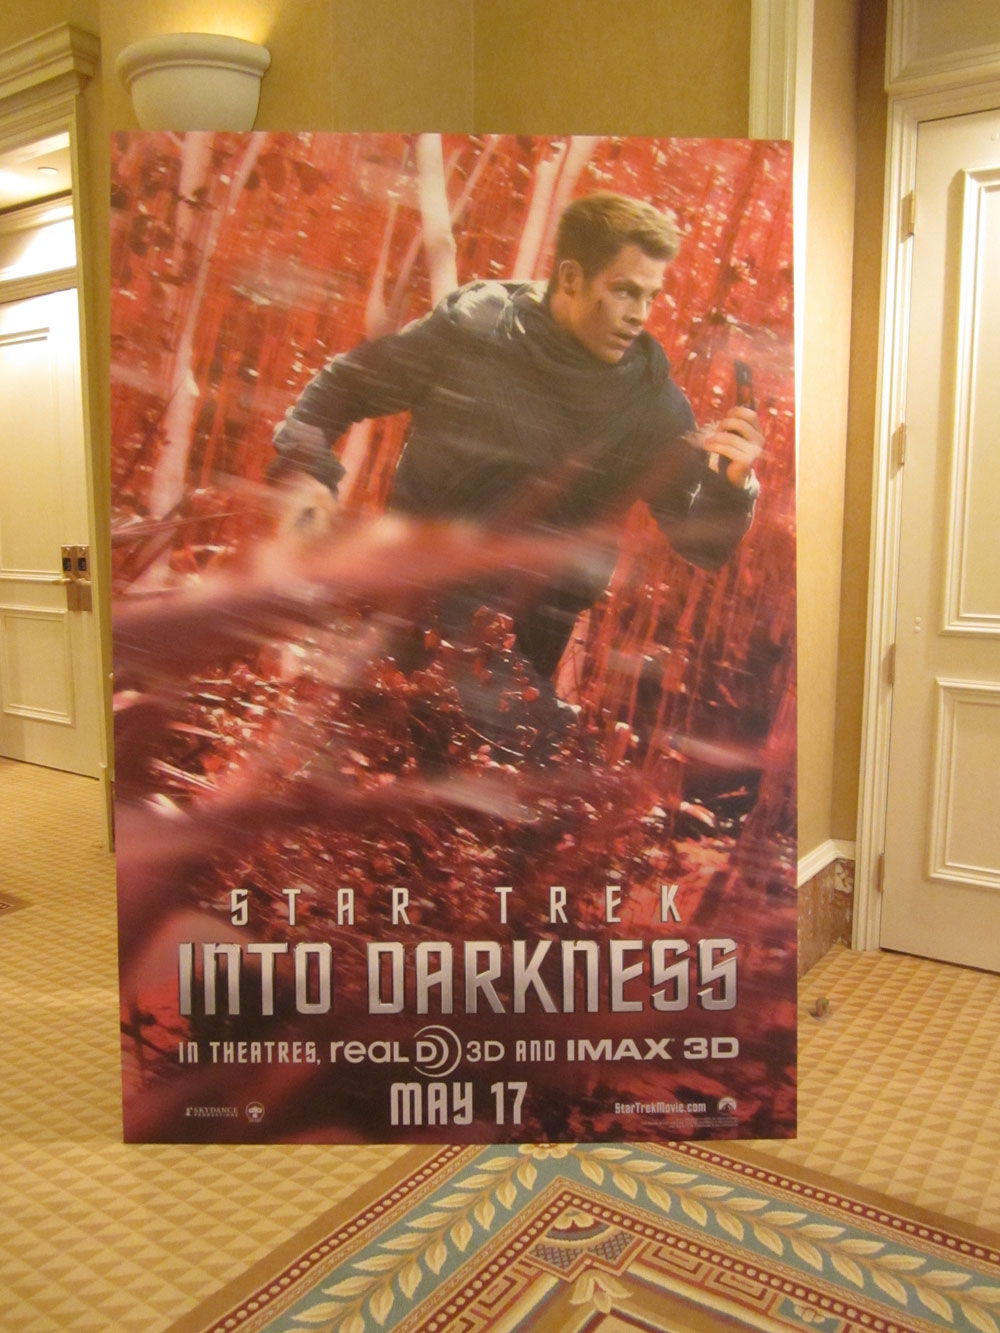 James Kirk Star Trek Into Darkness Character Poster